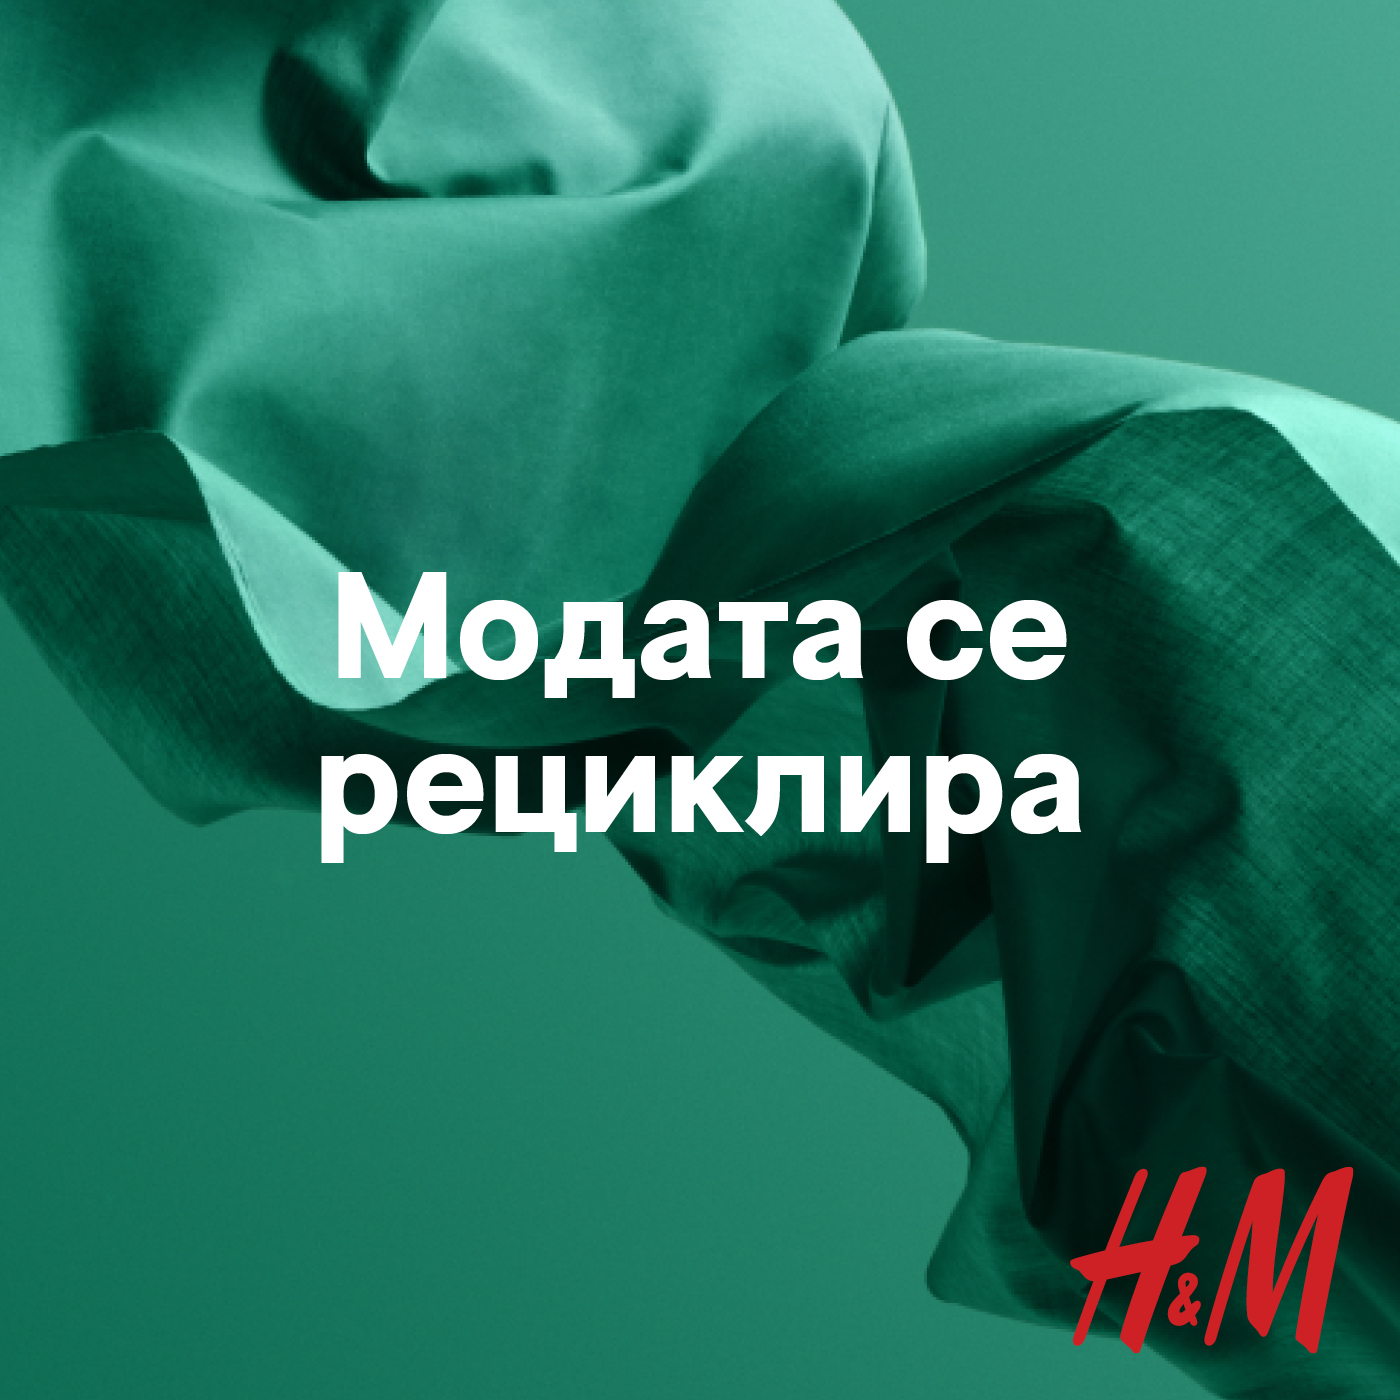 Fashion is recycled in H&M